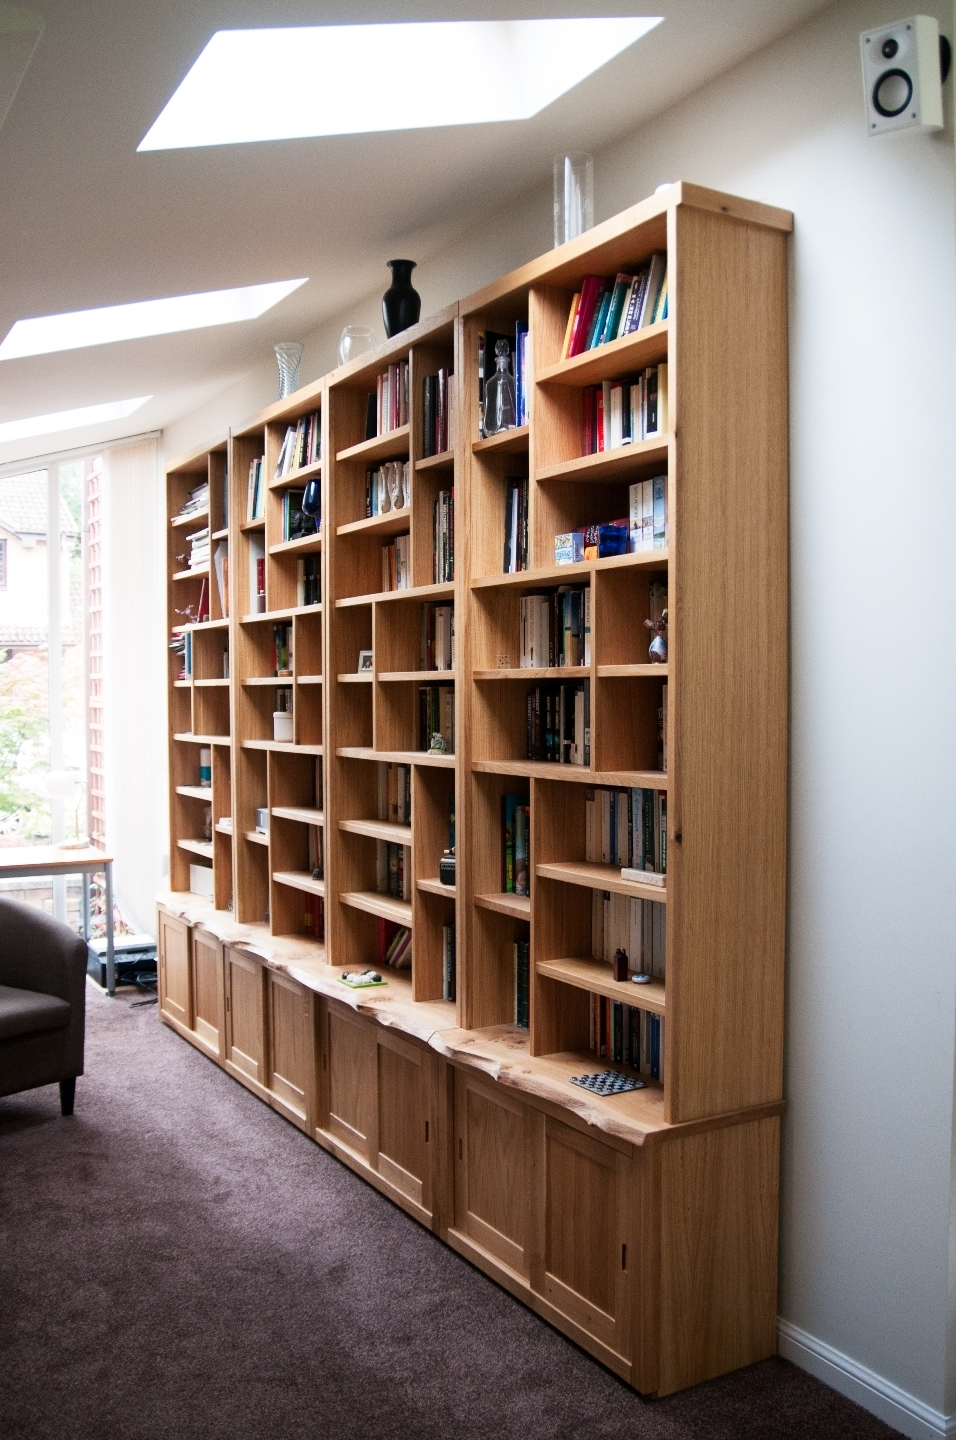 Furniture Home: Furniture Home Large Bookcases Sensational Photo For Current Large Bookcases (View 5 of 15)